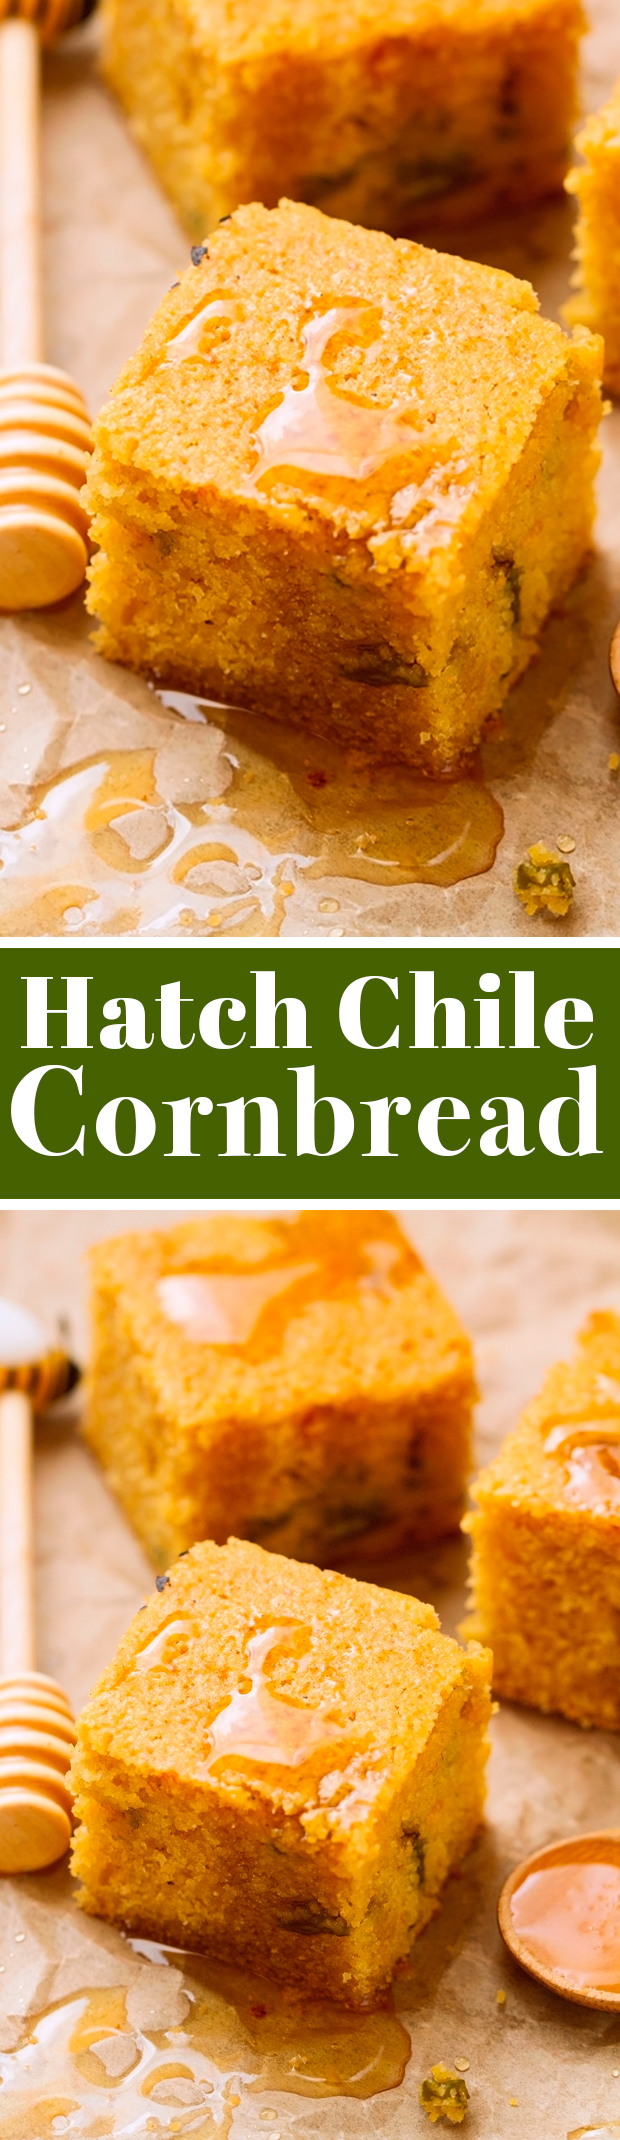 Hatch Chile Cornbread - speckled with hatch peppers but with a sweet savory feel. You're gonna be addicted! #cornbread #hatchchile #hatchchilecornbread | Littlespicejar.com @littlespicejar